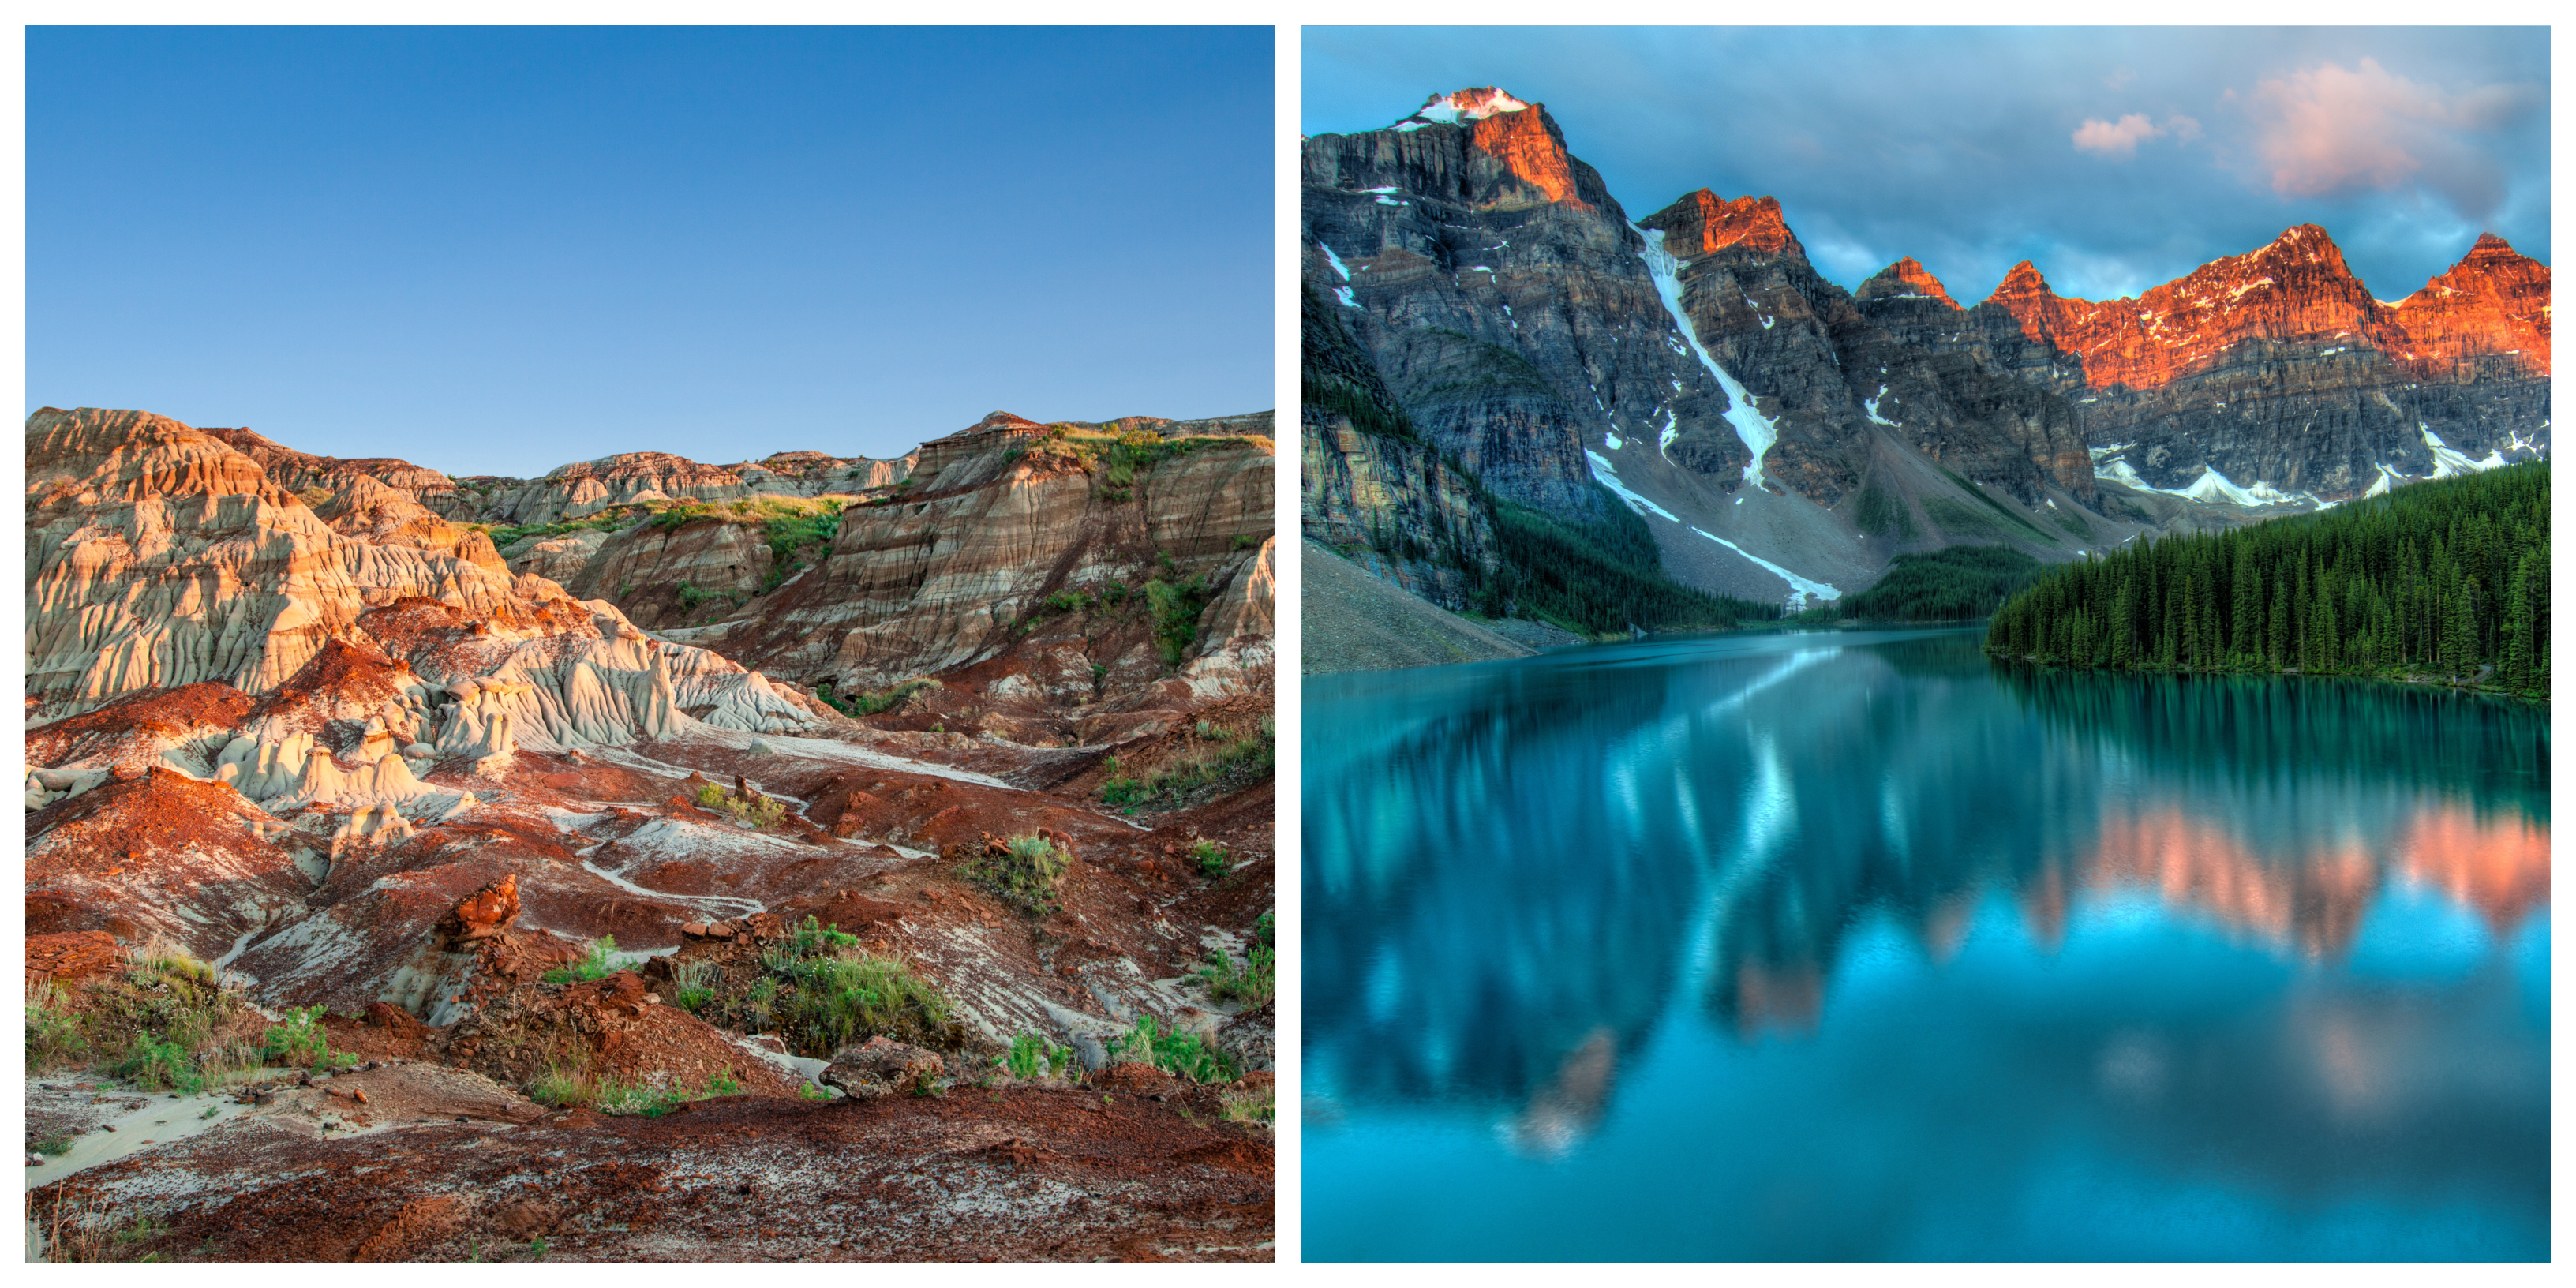 The Badlands and the Rocky Mountains provide a glimpse at Alberta's diverse filming locations – all within driving distance from Calgary.